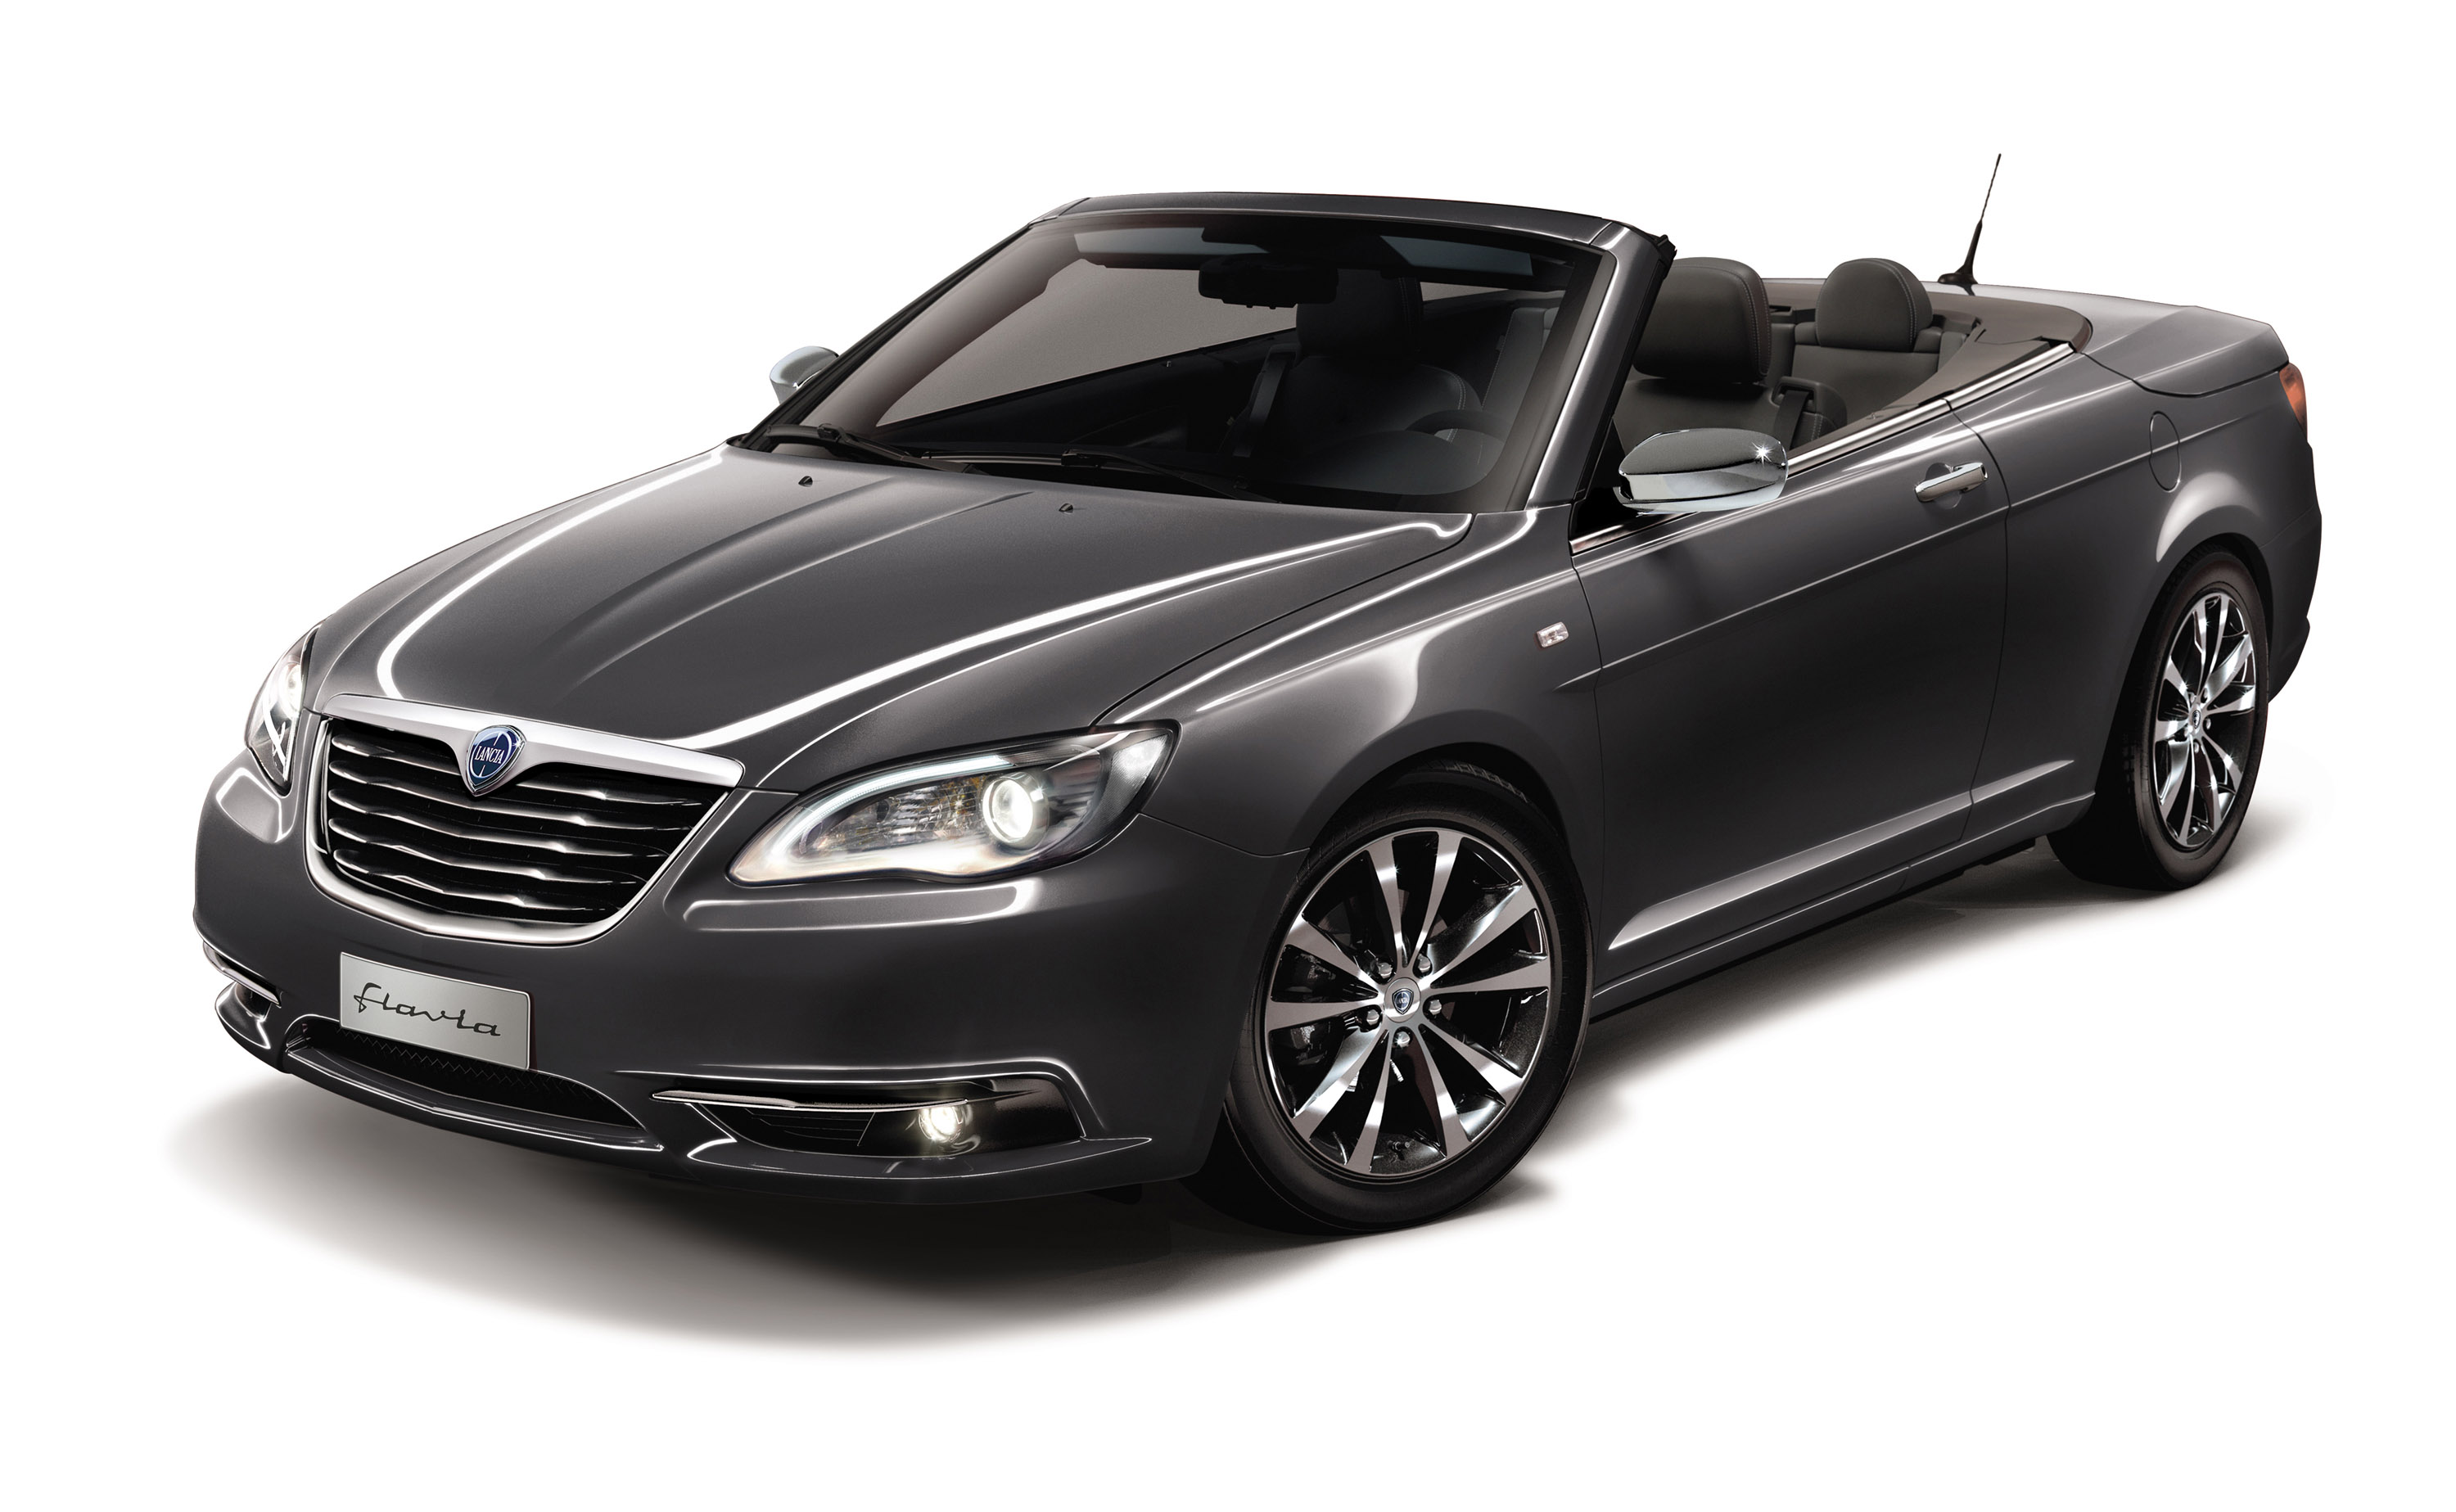 2013 lancia flavia convertible expression of italian way of life. Black Bedroom Furniture Sets. Home Design Ideas